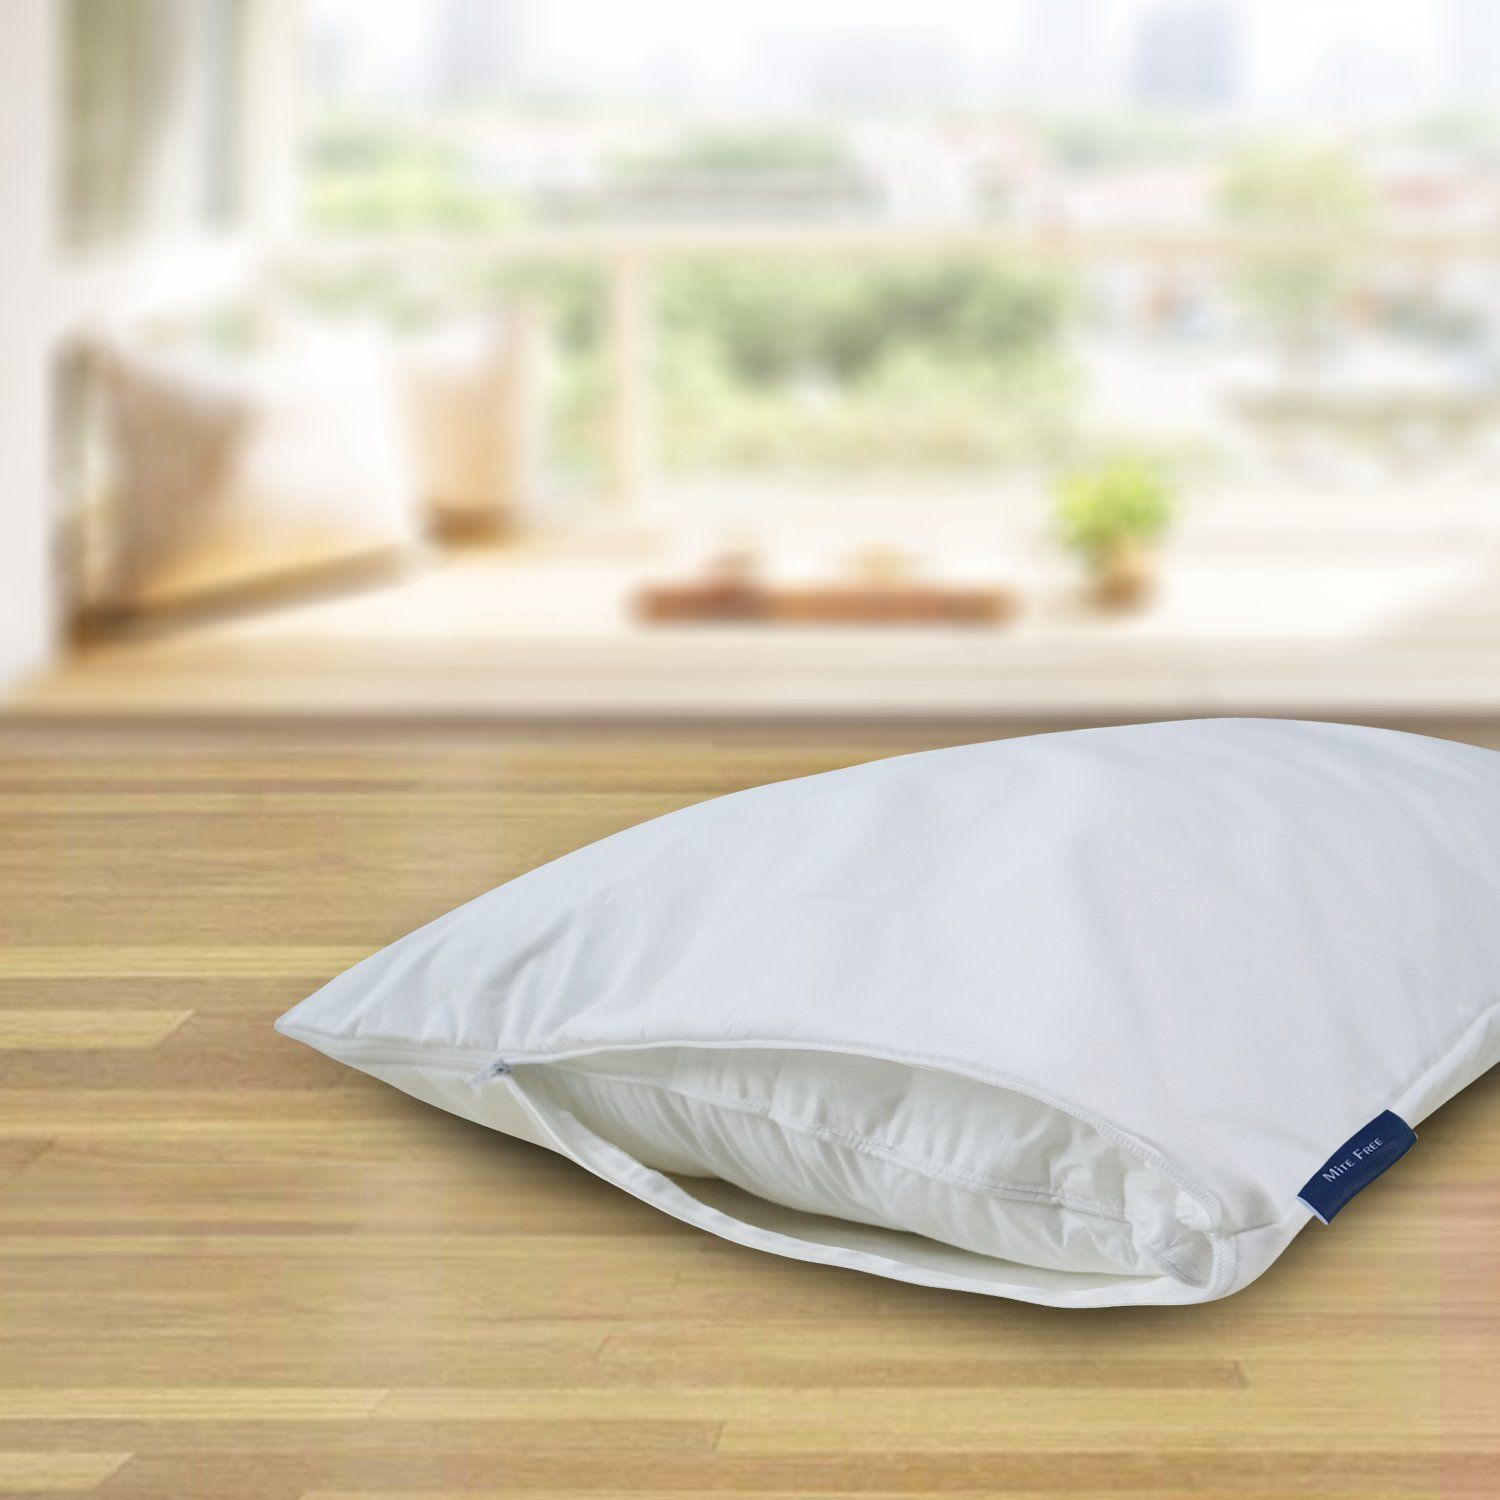 Cooling Hypoallergenic Waterproof Pillow Protectors Zippered